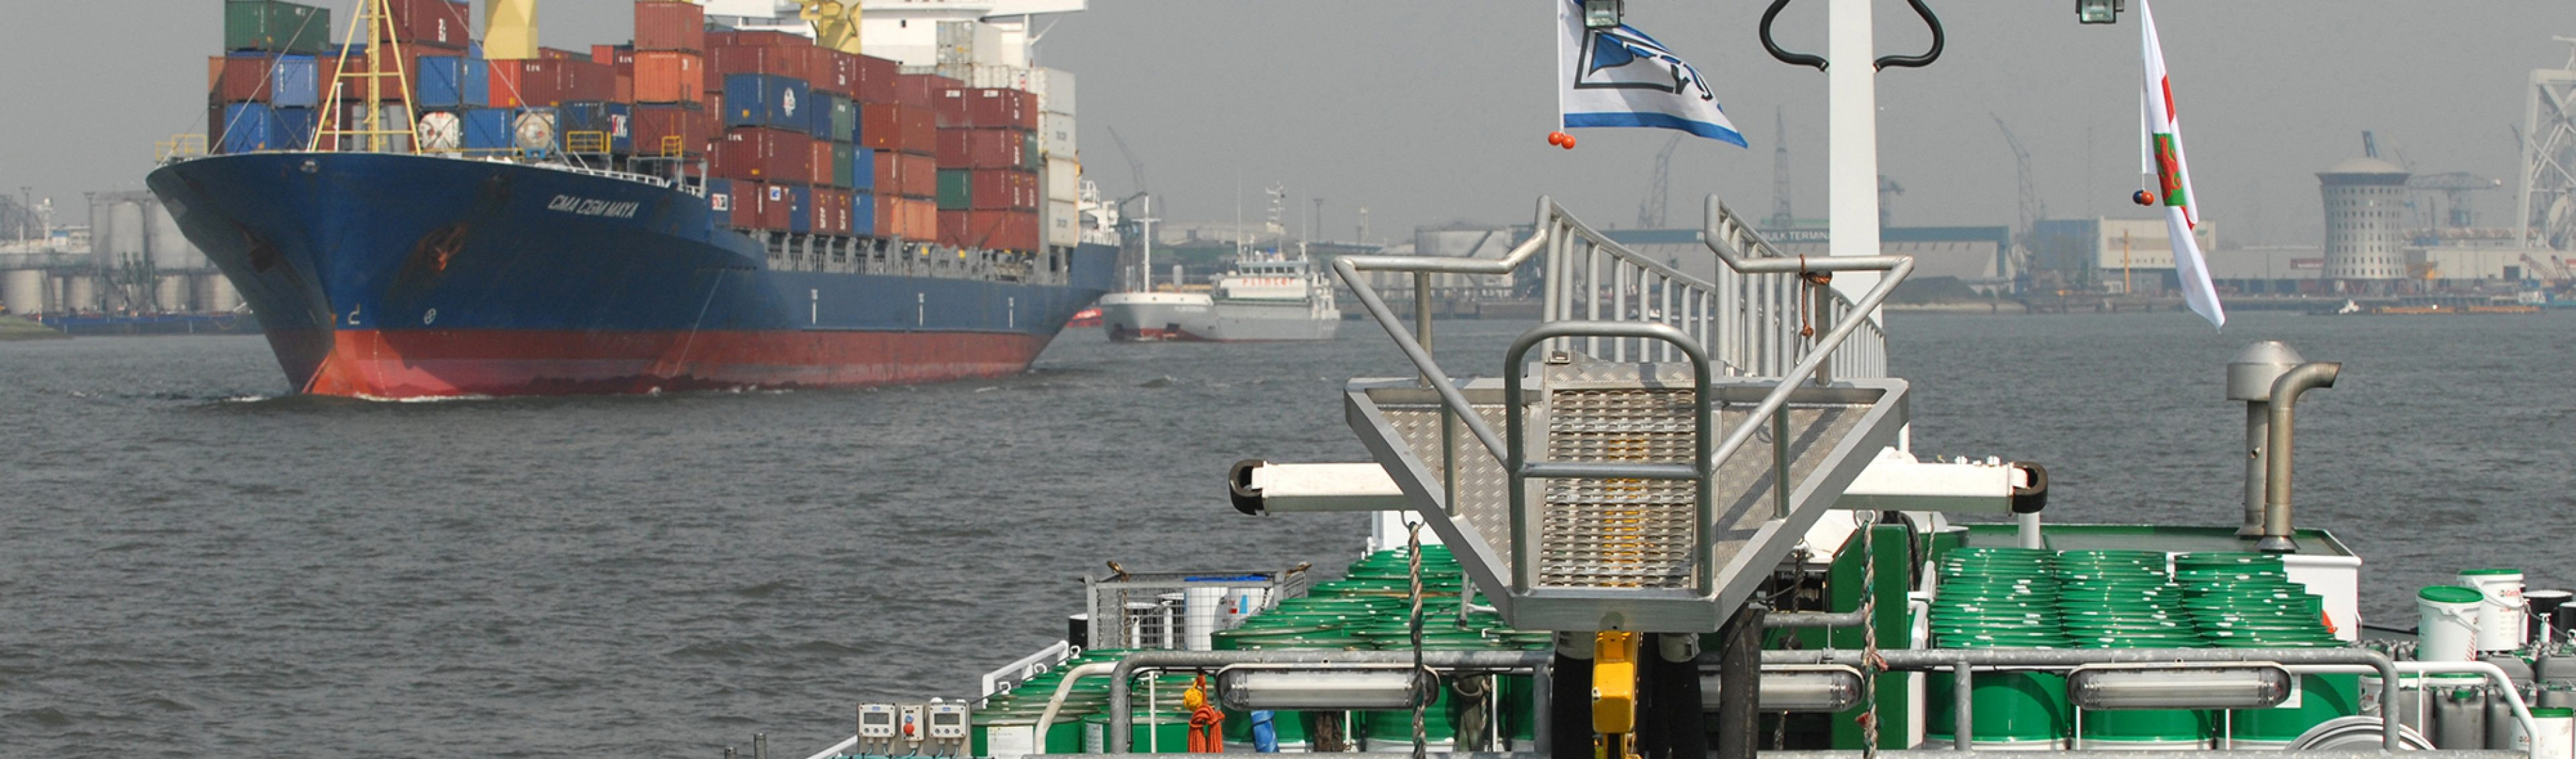 M.t.'s product barge Vanora carrying barrels of lubricant passes a container cargo ship in Rotterdam Harbour, Netherlands.